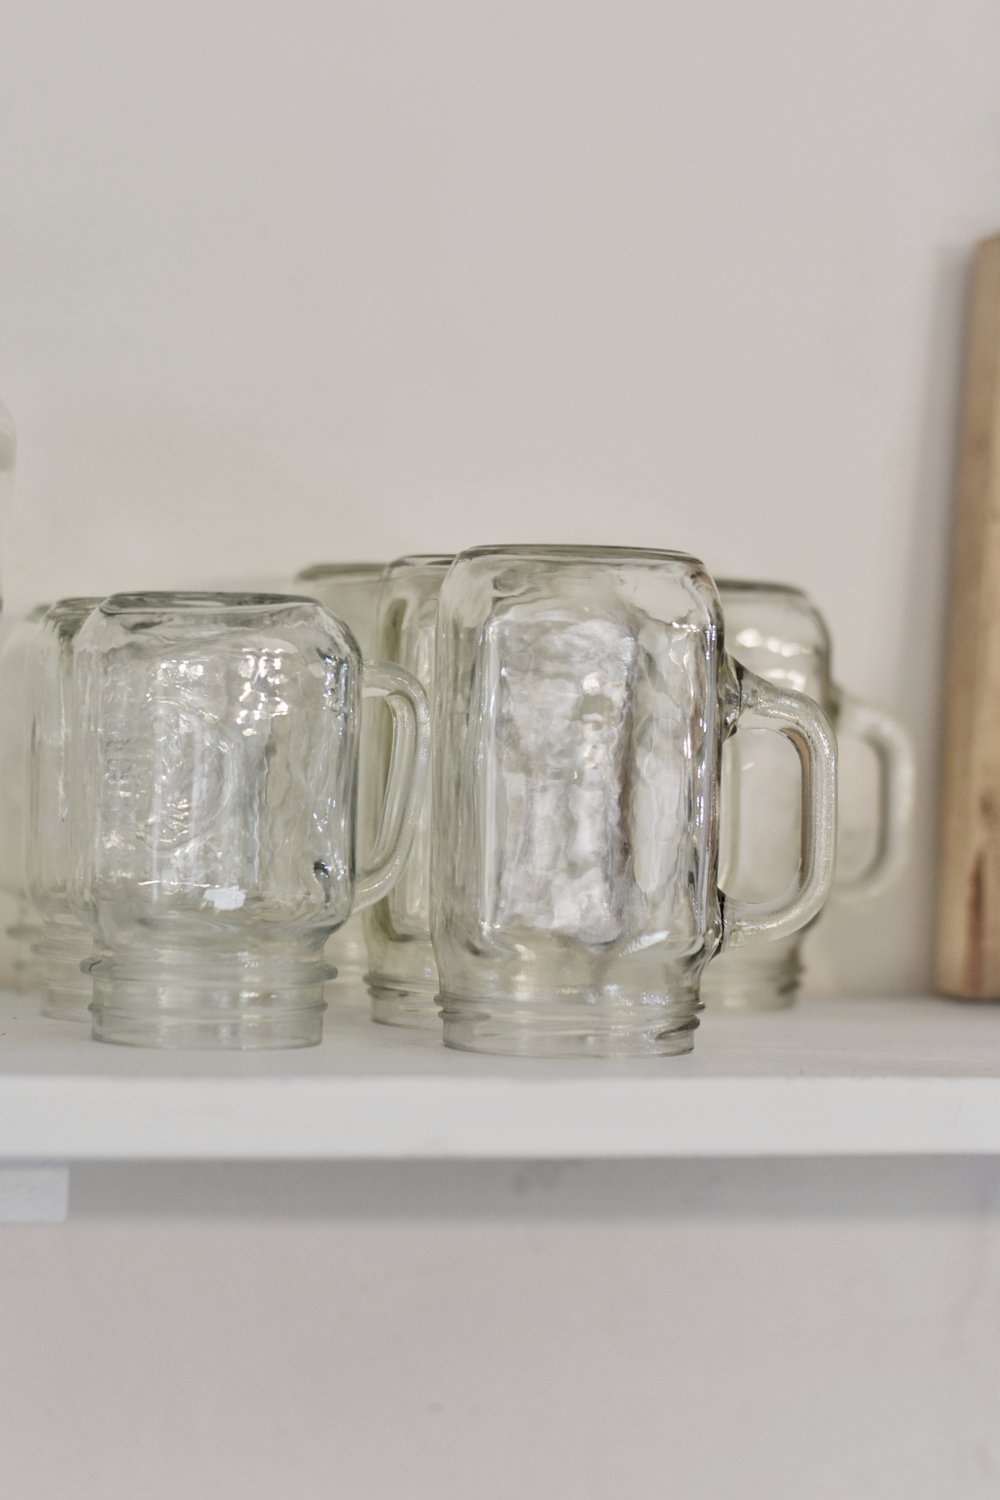 Vintage Glass Canning Drinking Jars With Handles. Tips on simplifying life in the kitchen.